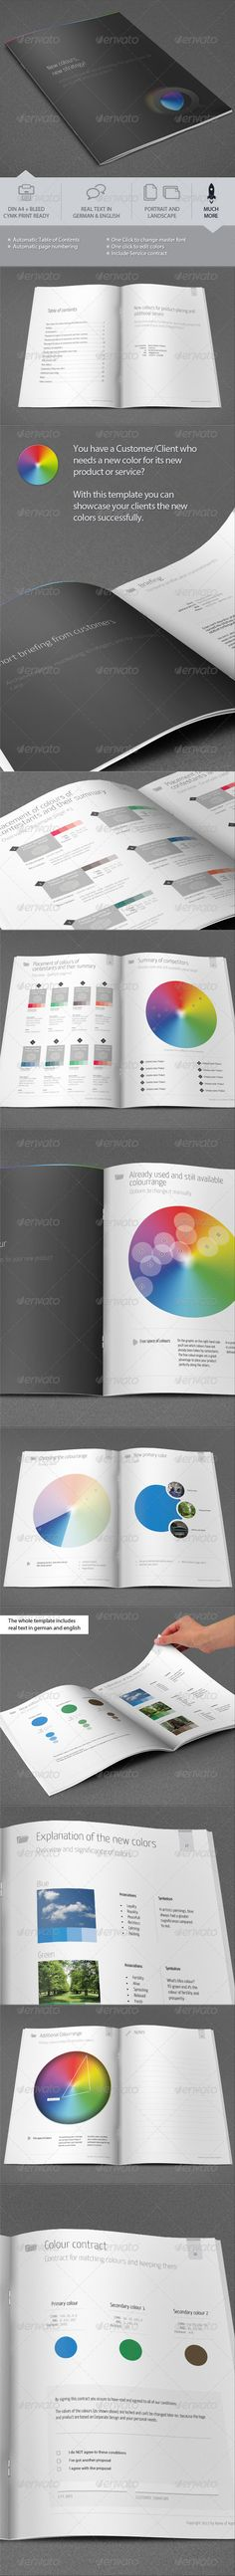 Color Finder Proposal for new Product and